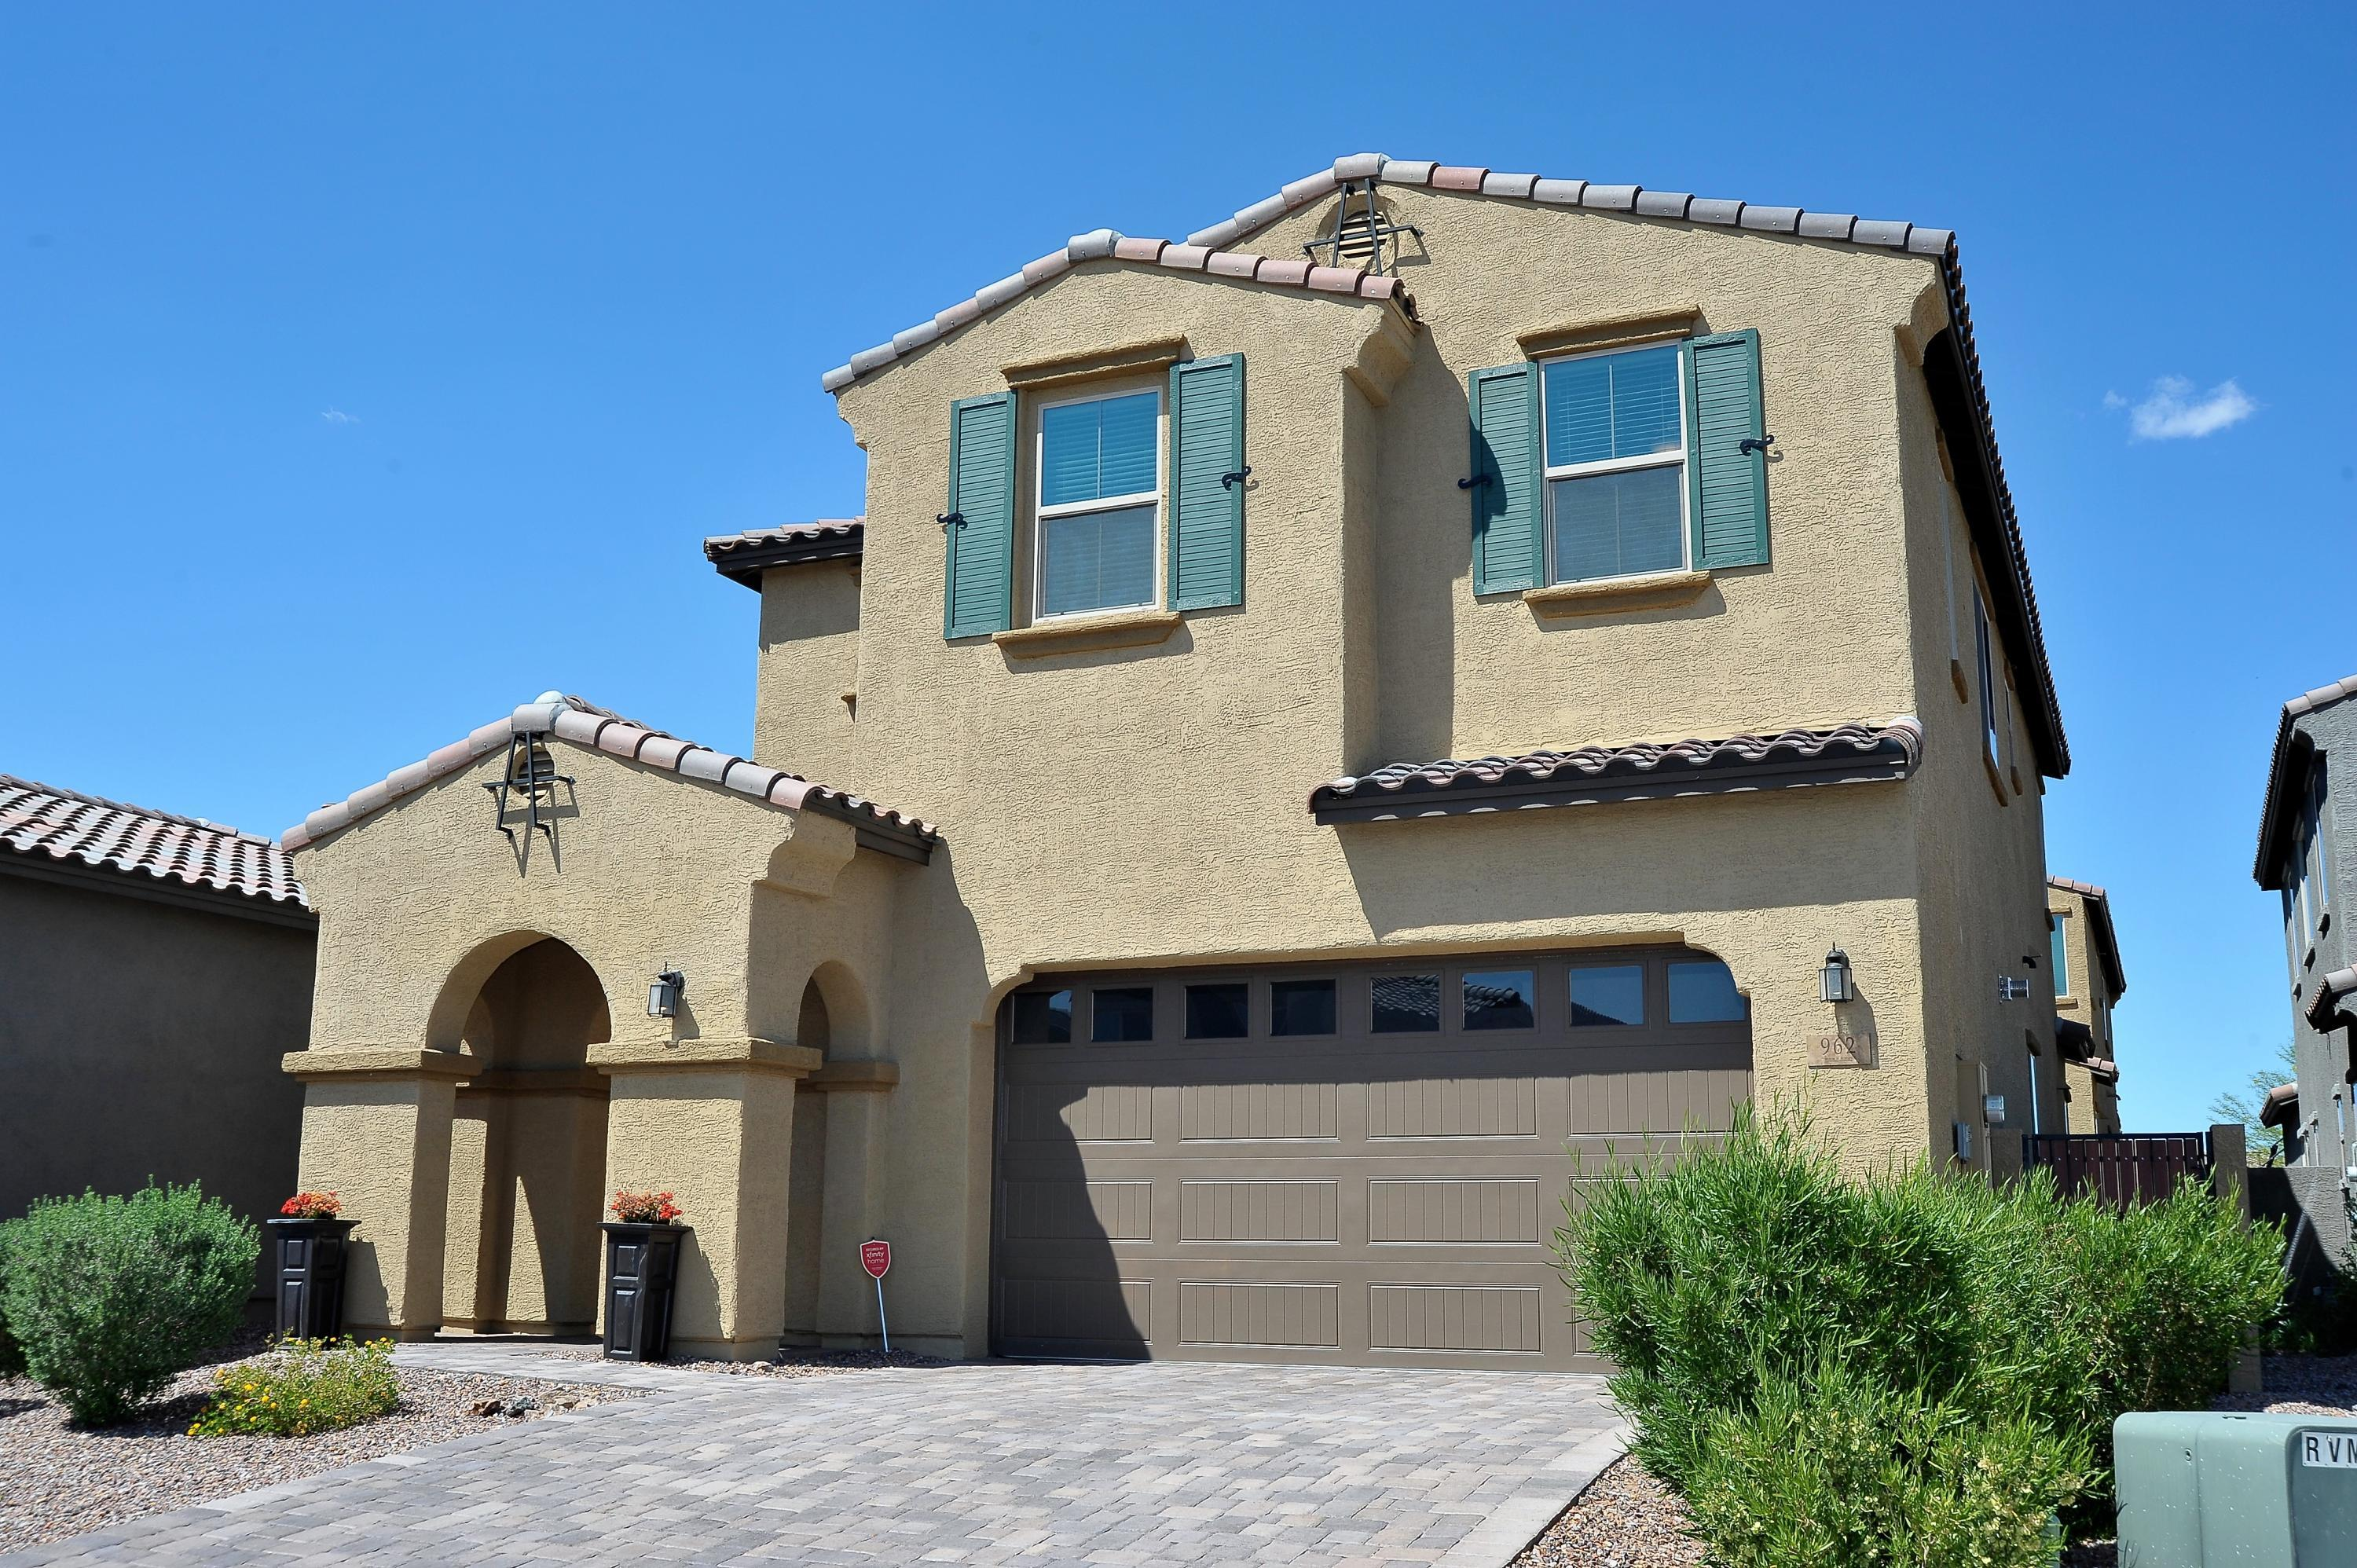 962 W Baccata Court, Oro Valley, Arizona 85755, 4 Bedrooms Bedrooms, ,3 BathroomsBathrooms,Single Family,For Sale,962 W Baccata Court,22110546